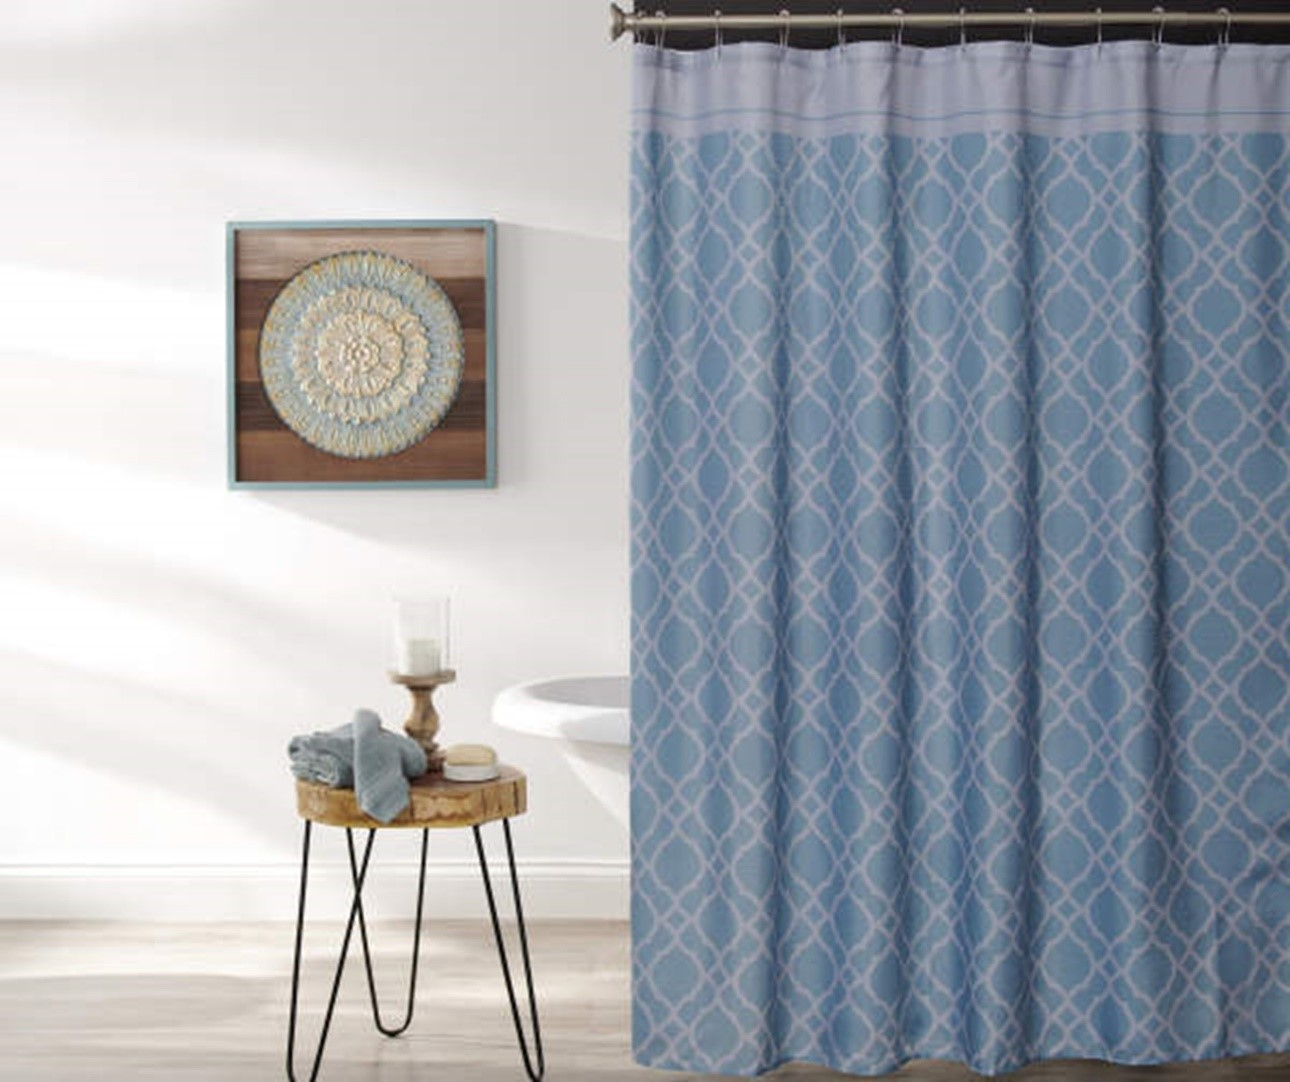 white walls light floor with blue patterned shower curtain and hanging art with wood side table blue wash cloths and candle